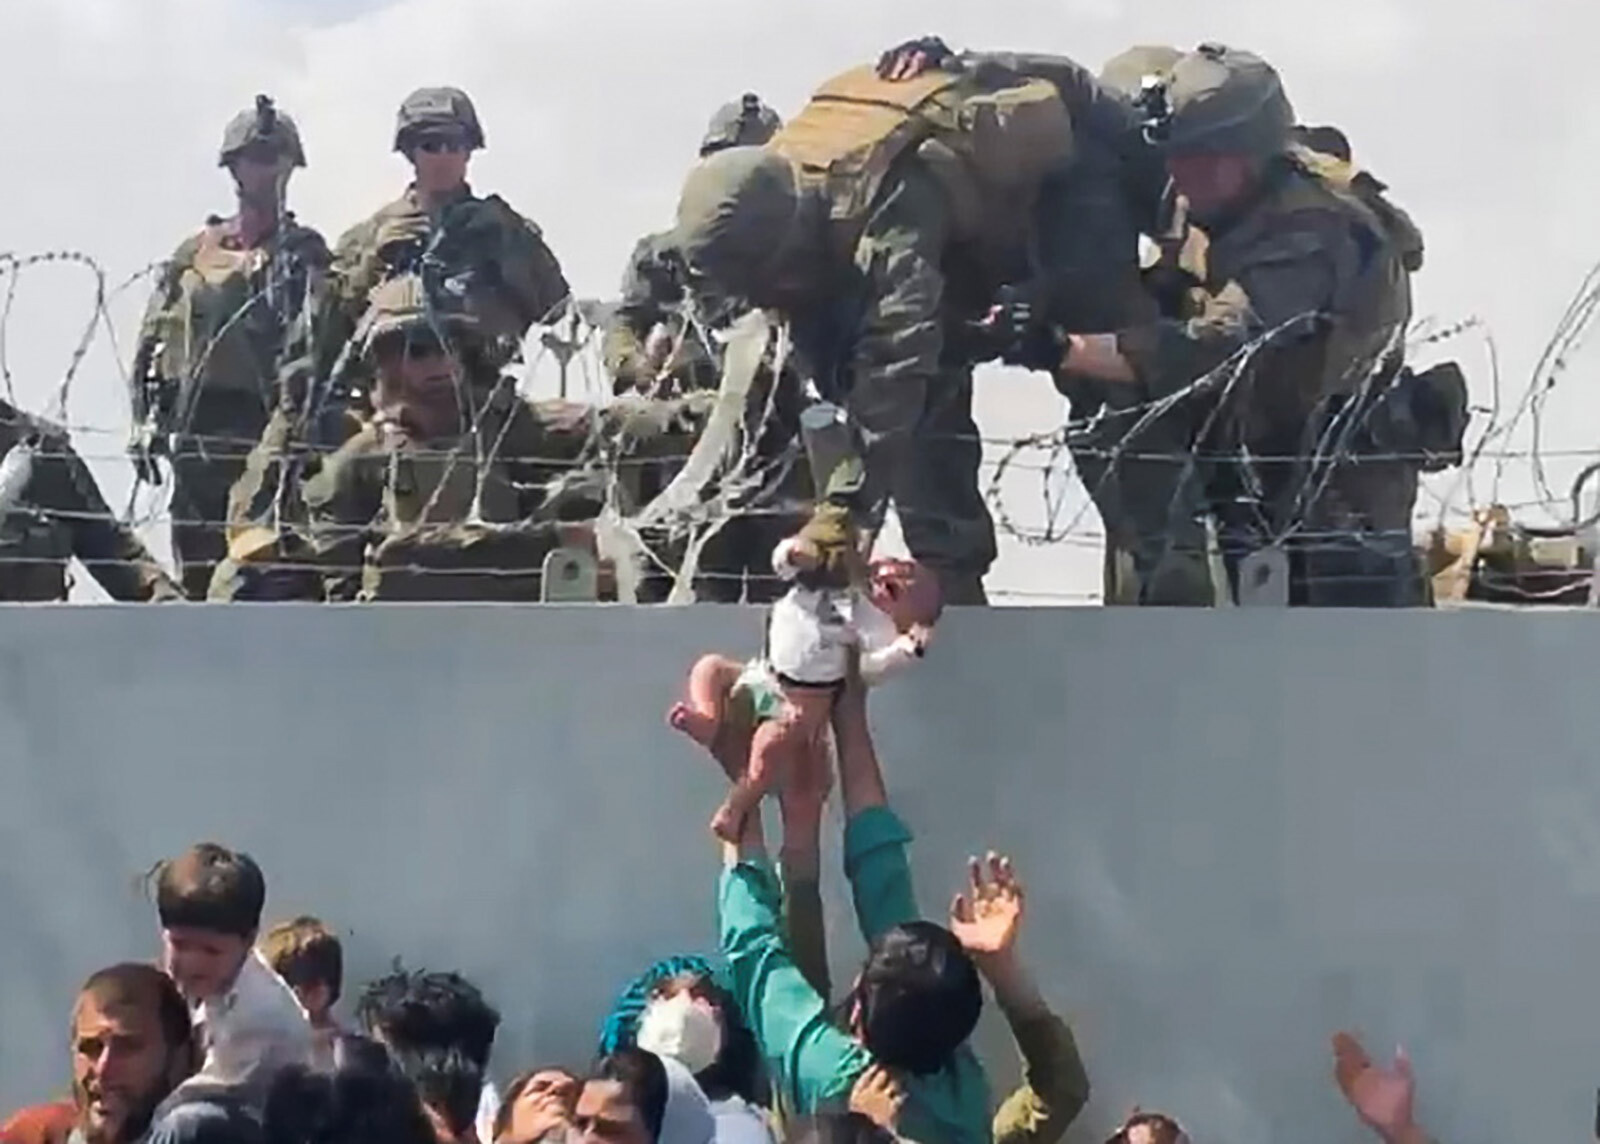 Fact check: Did the Marine who Trump brought on stage at rally actually hoist a baby over a wall at Kabul airport?